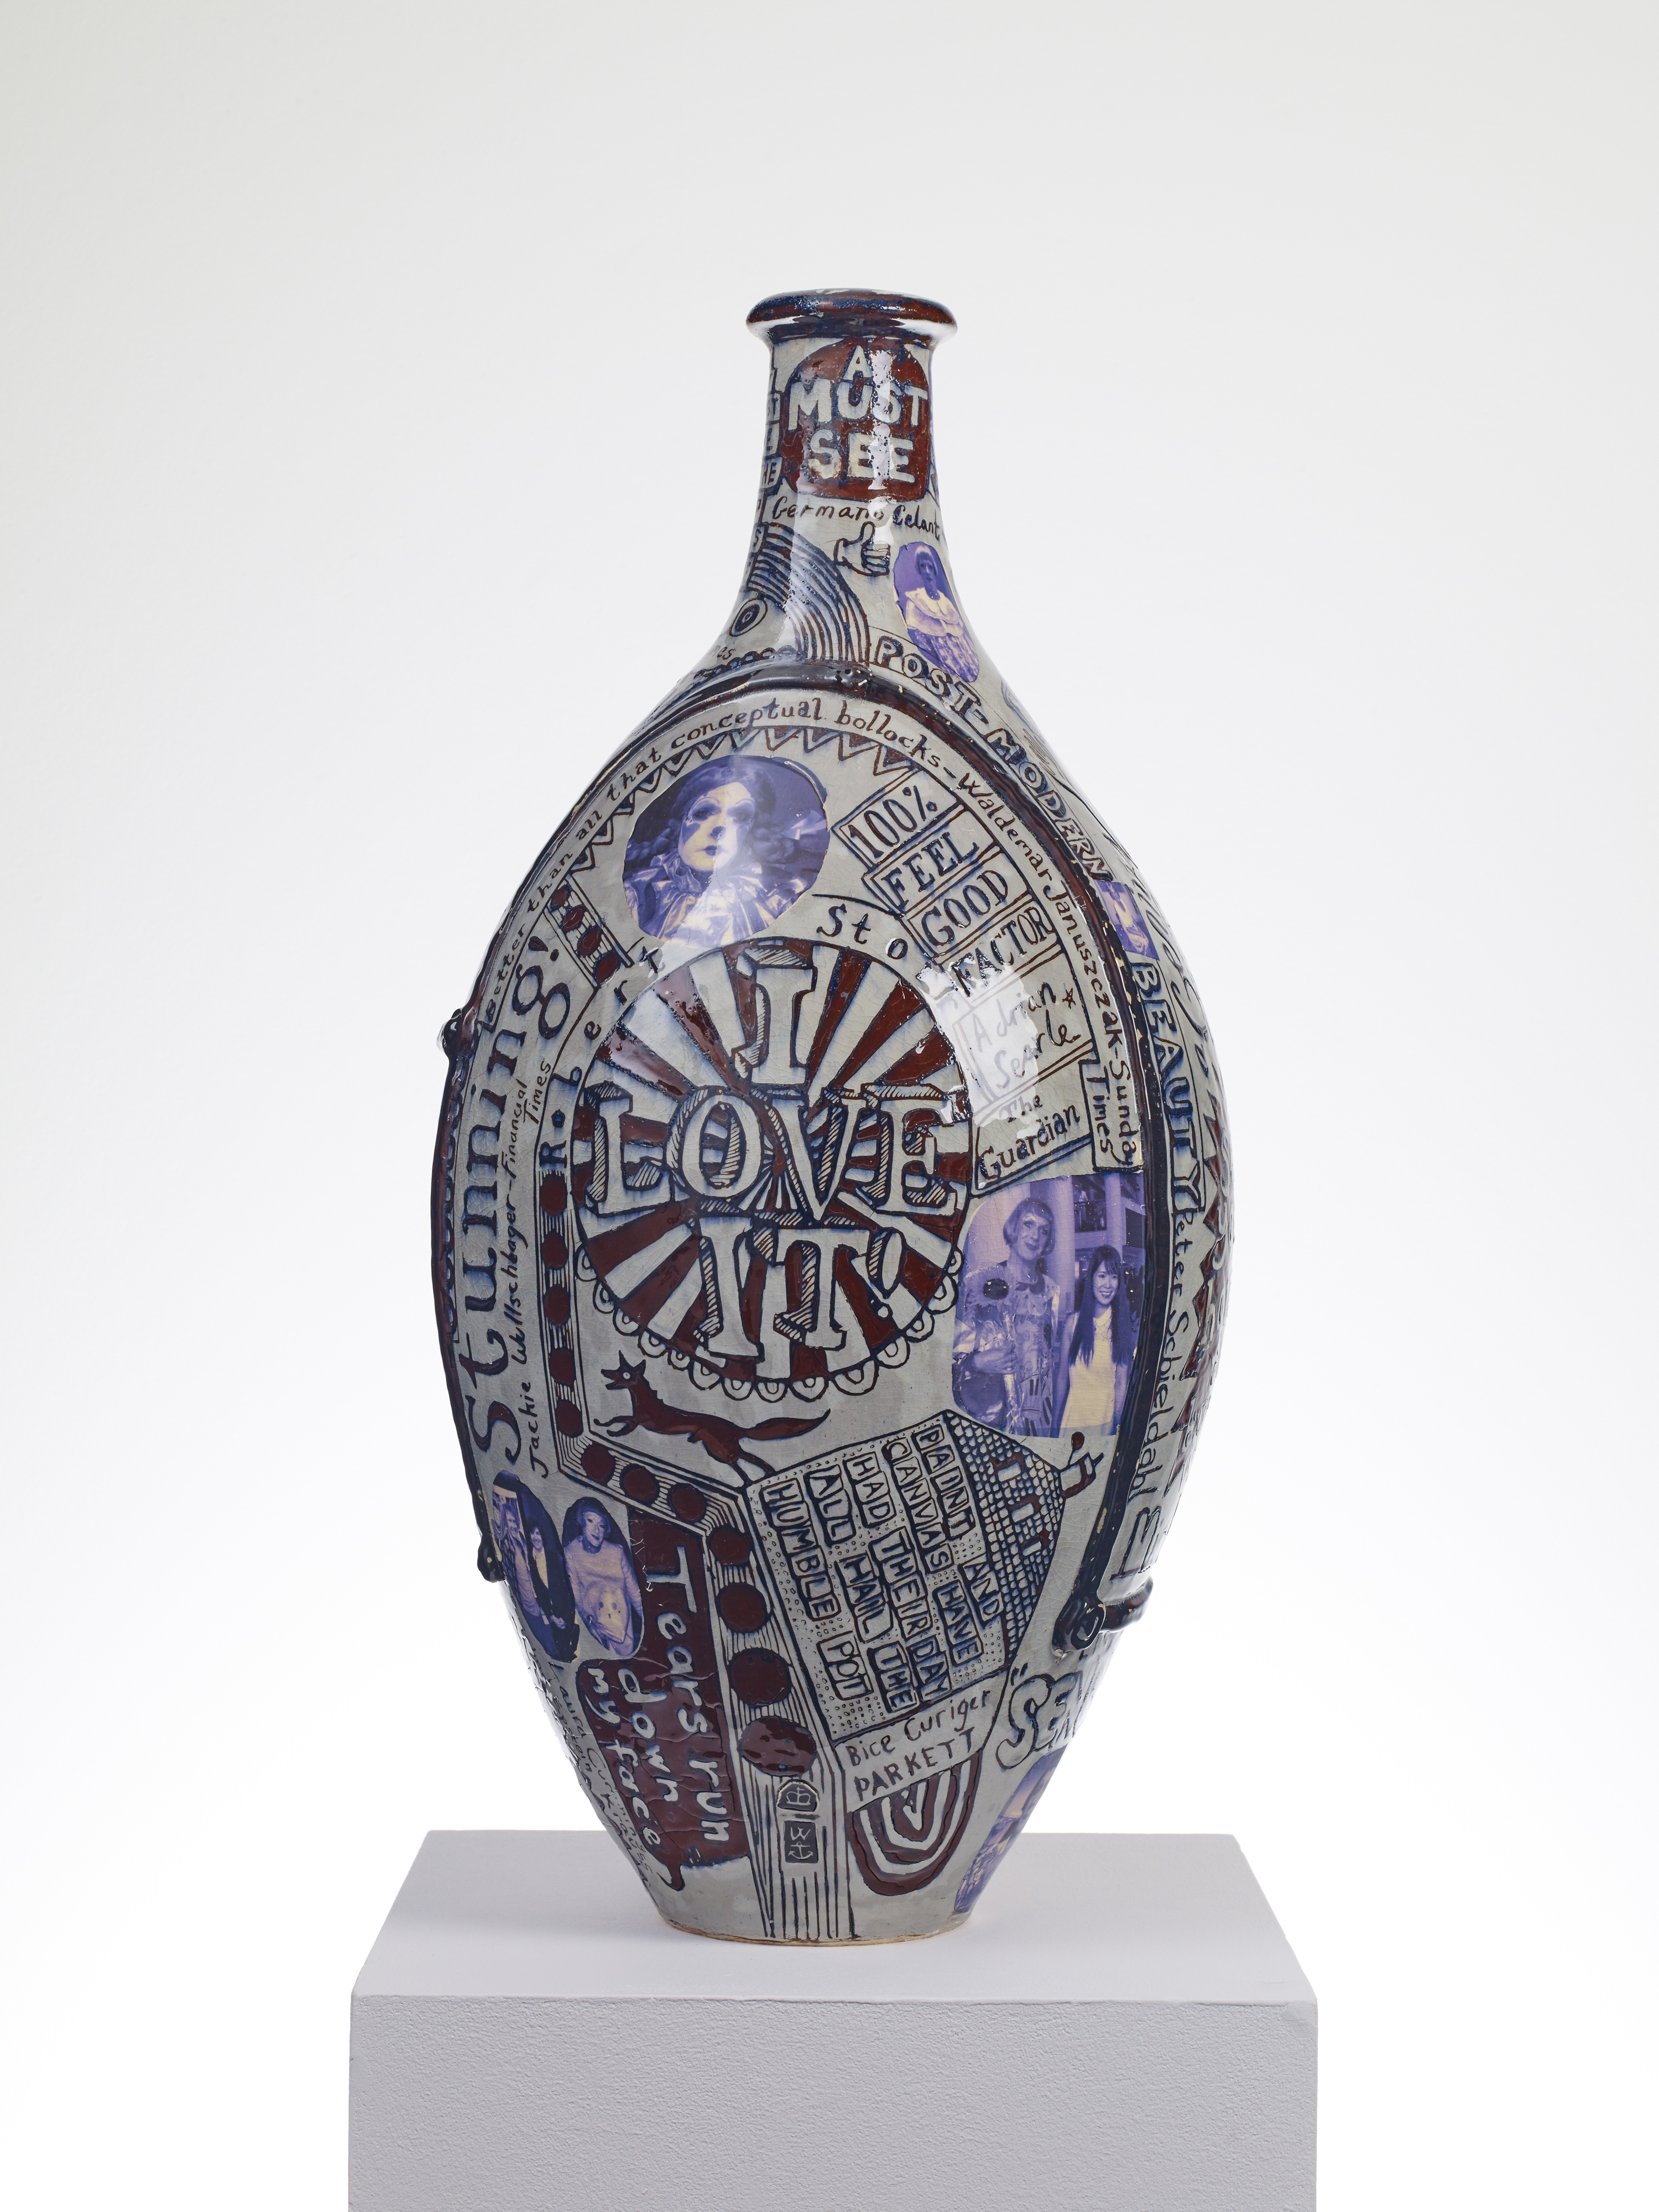 Grayson Perry, Puff Piece, 2016, Glazed ceramic, Courtesy the artist and Victoria Miro, London Photography: Stephen White © Grayson Perry